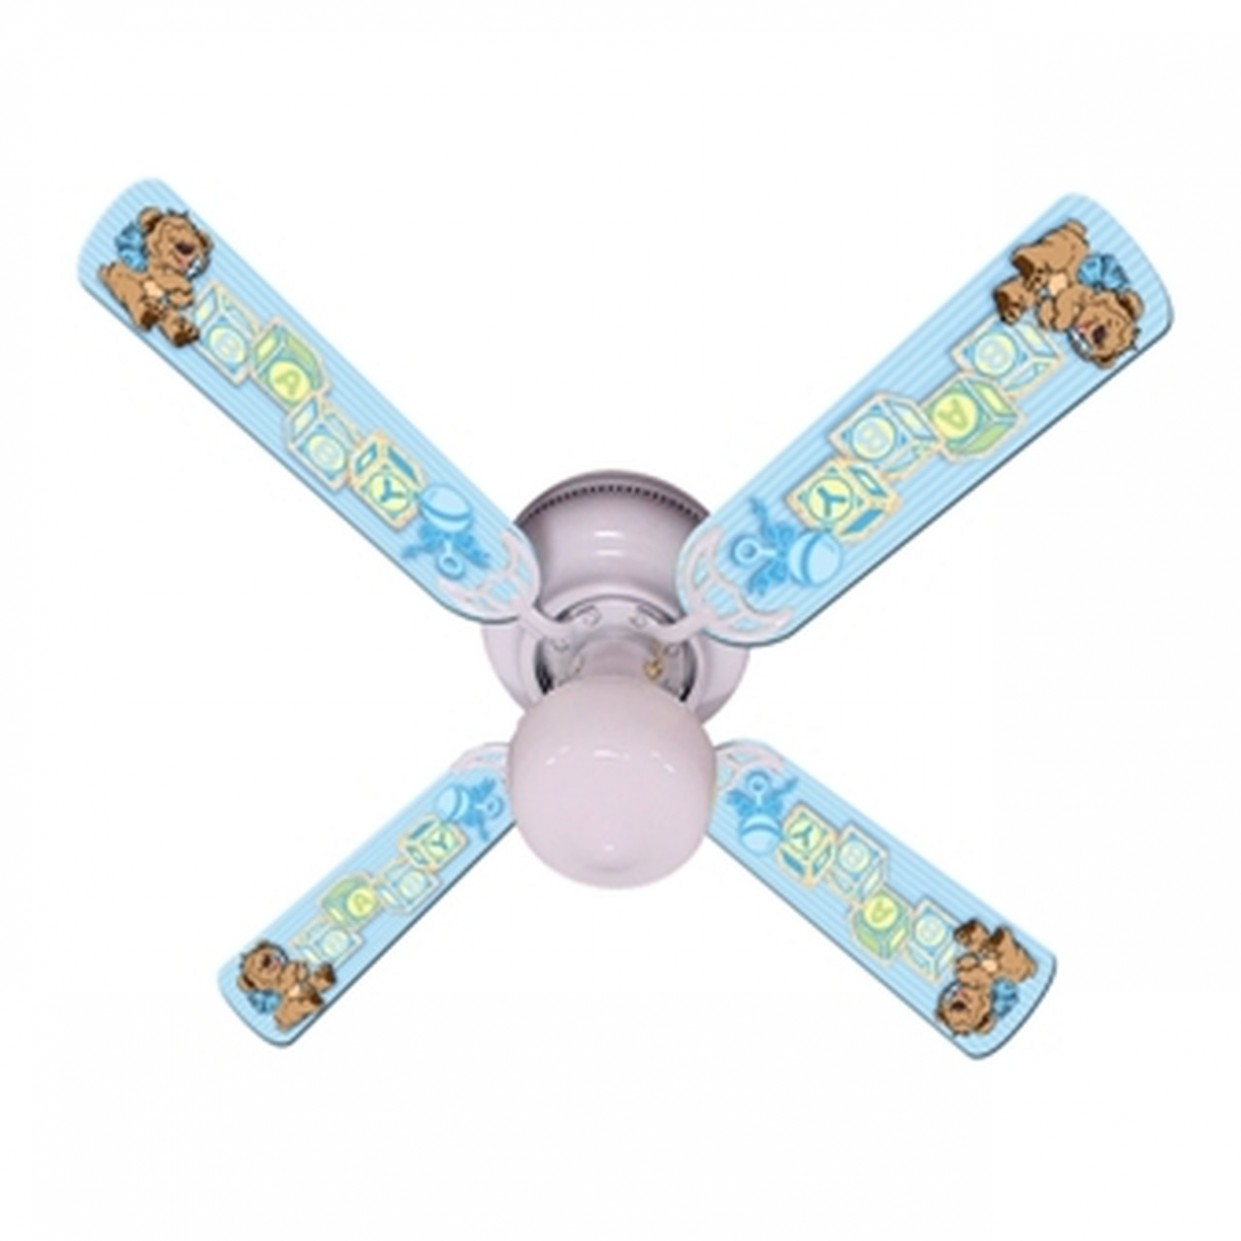 "Baby Nursery Toys Blocks Blue Ceiling Fan 8"" - Baby Room Ceiling Fan"